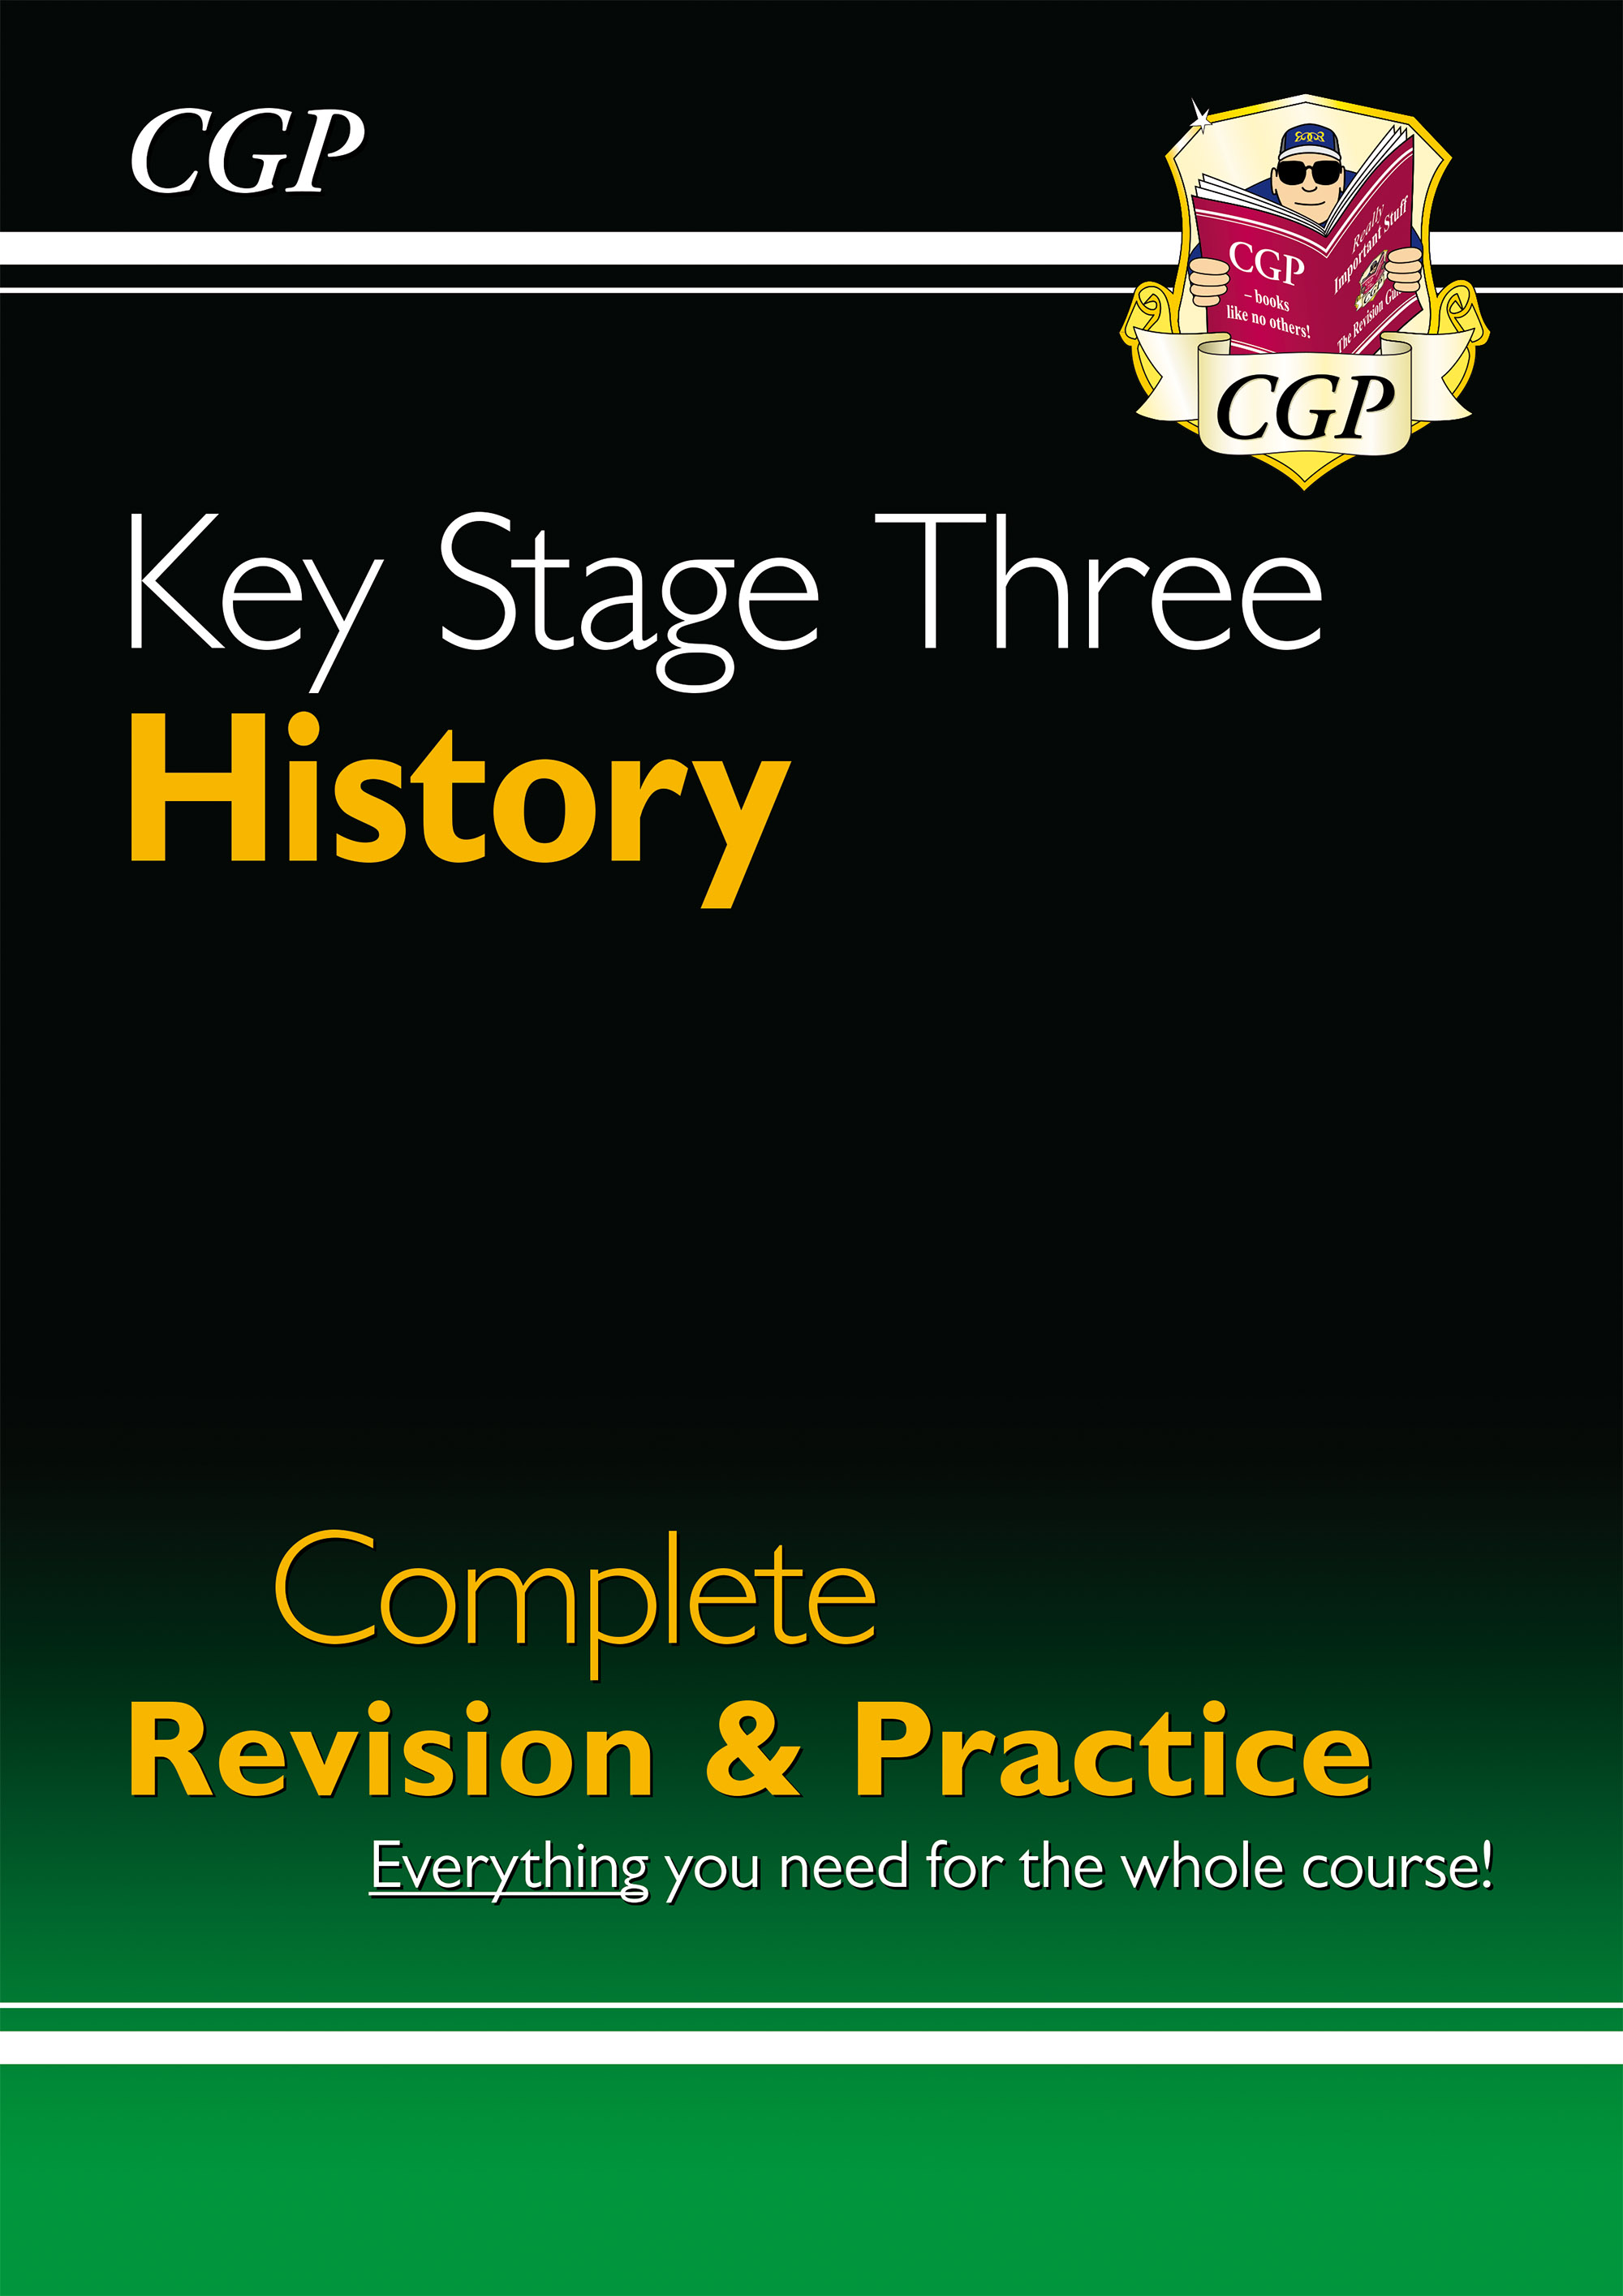 HHS34D - New KS3 History Complete Revision & Practice (Online Edition)